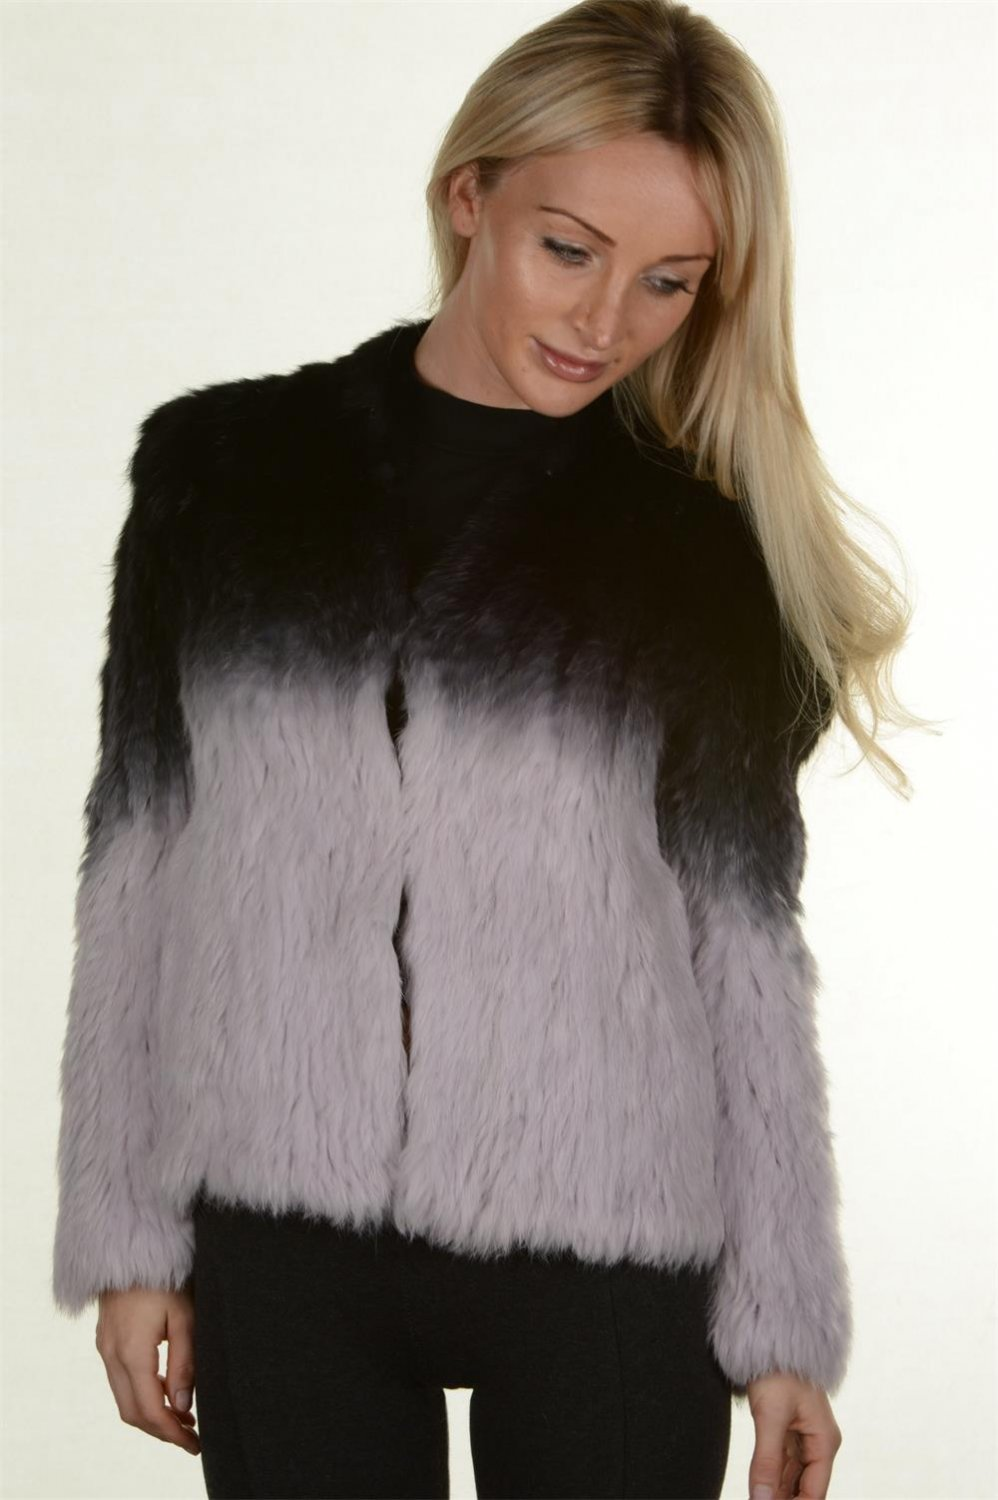 Black/Purple Gradient Knit Real Rabbit Fur Jacket